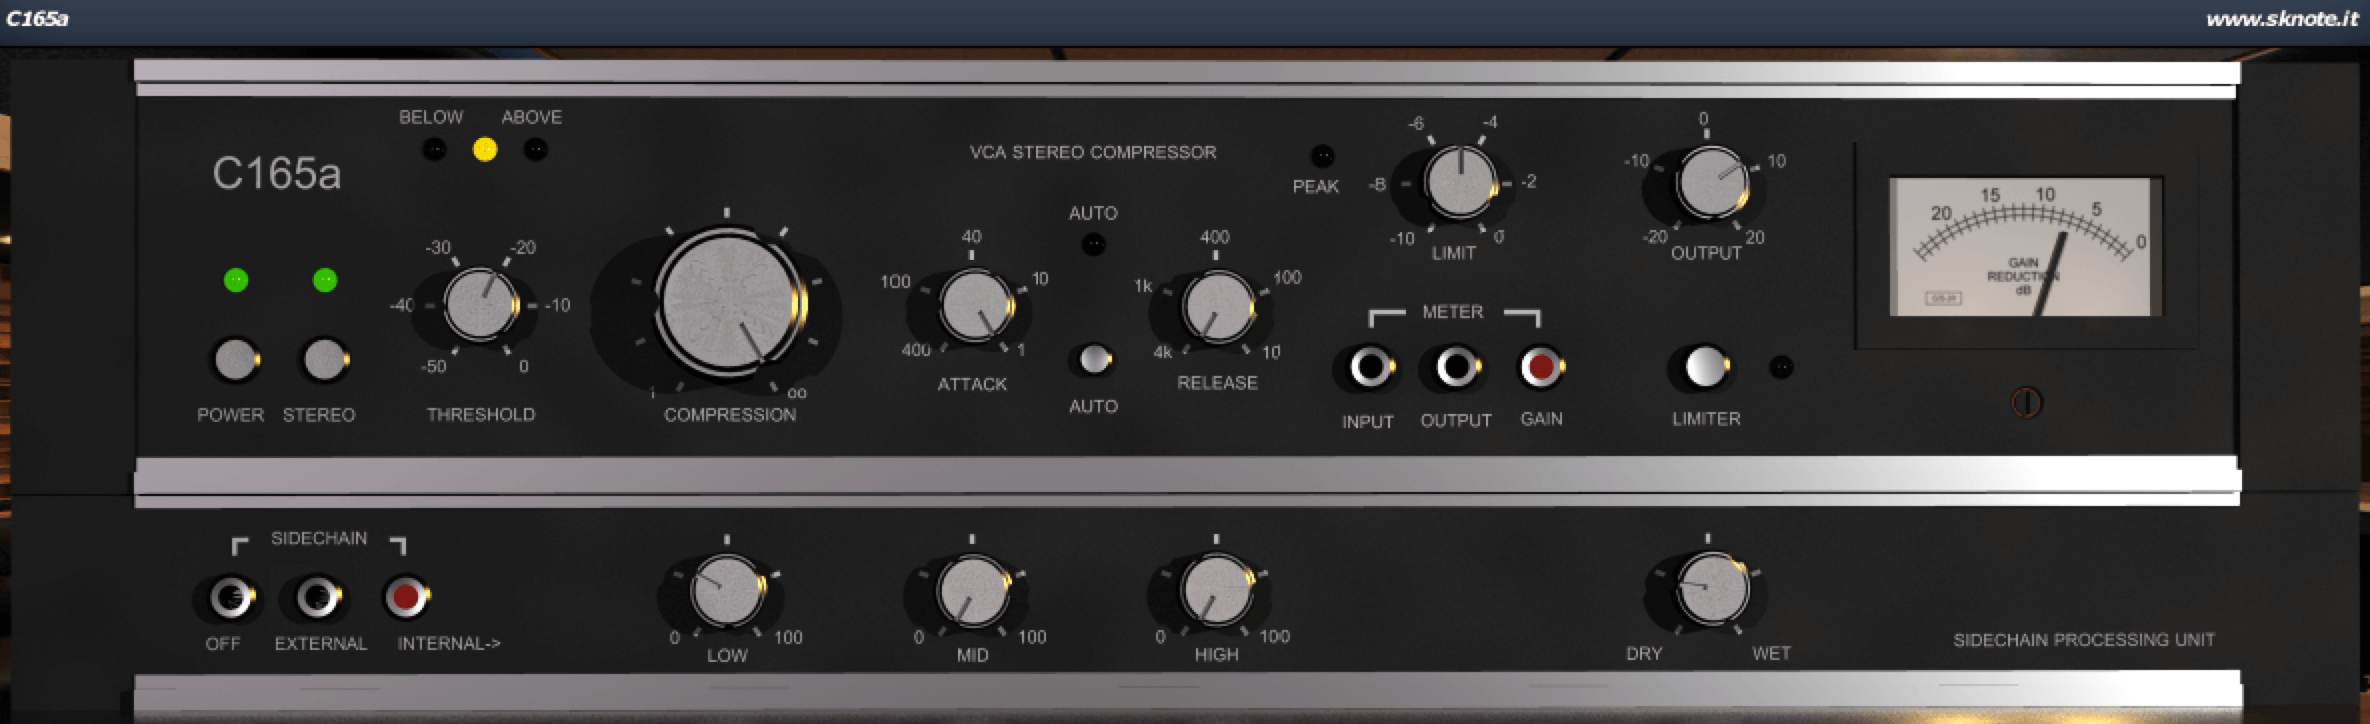 Using the C165a compressor to mix a Hip-Hop and Trap beat